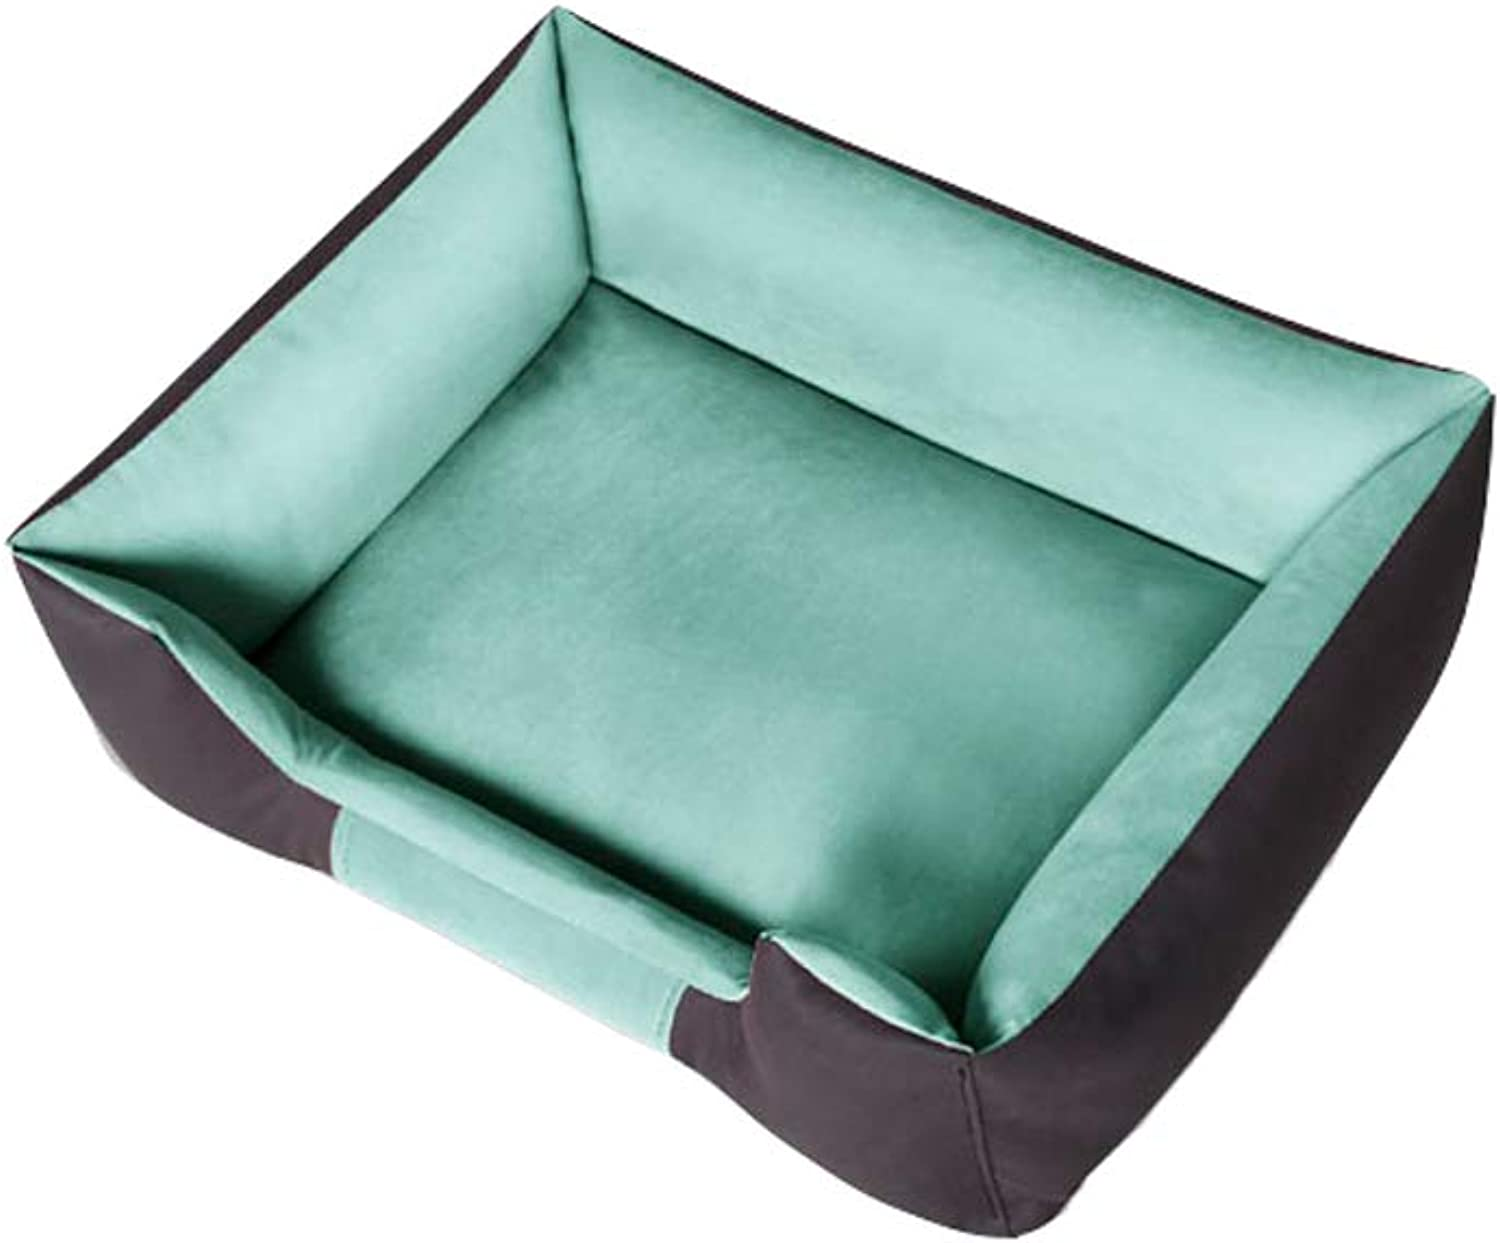 Dog Bed, Nonstick Hair Four Seasons Washable Dog House Medium Small Dog Kennel Warm Pet Mattress (color   Green, Size   M)